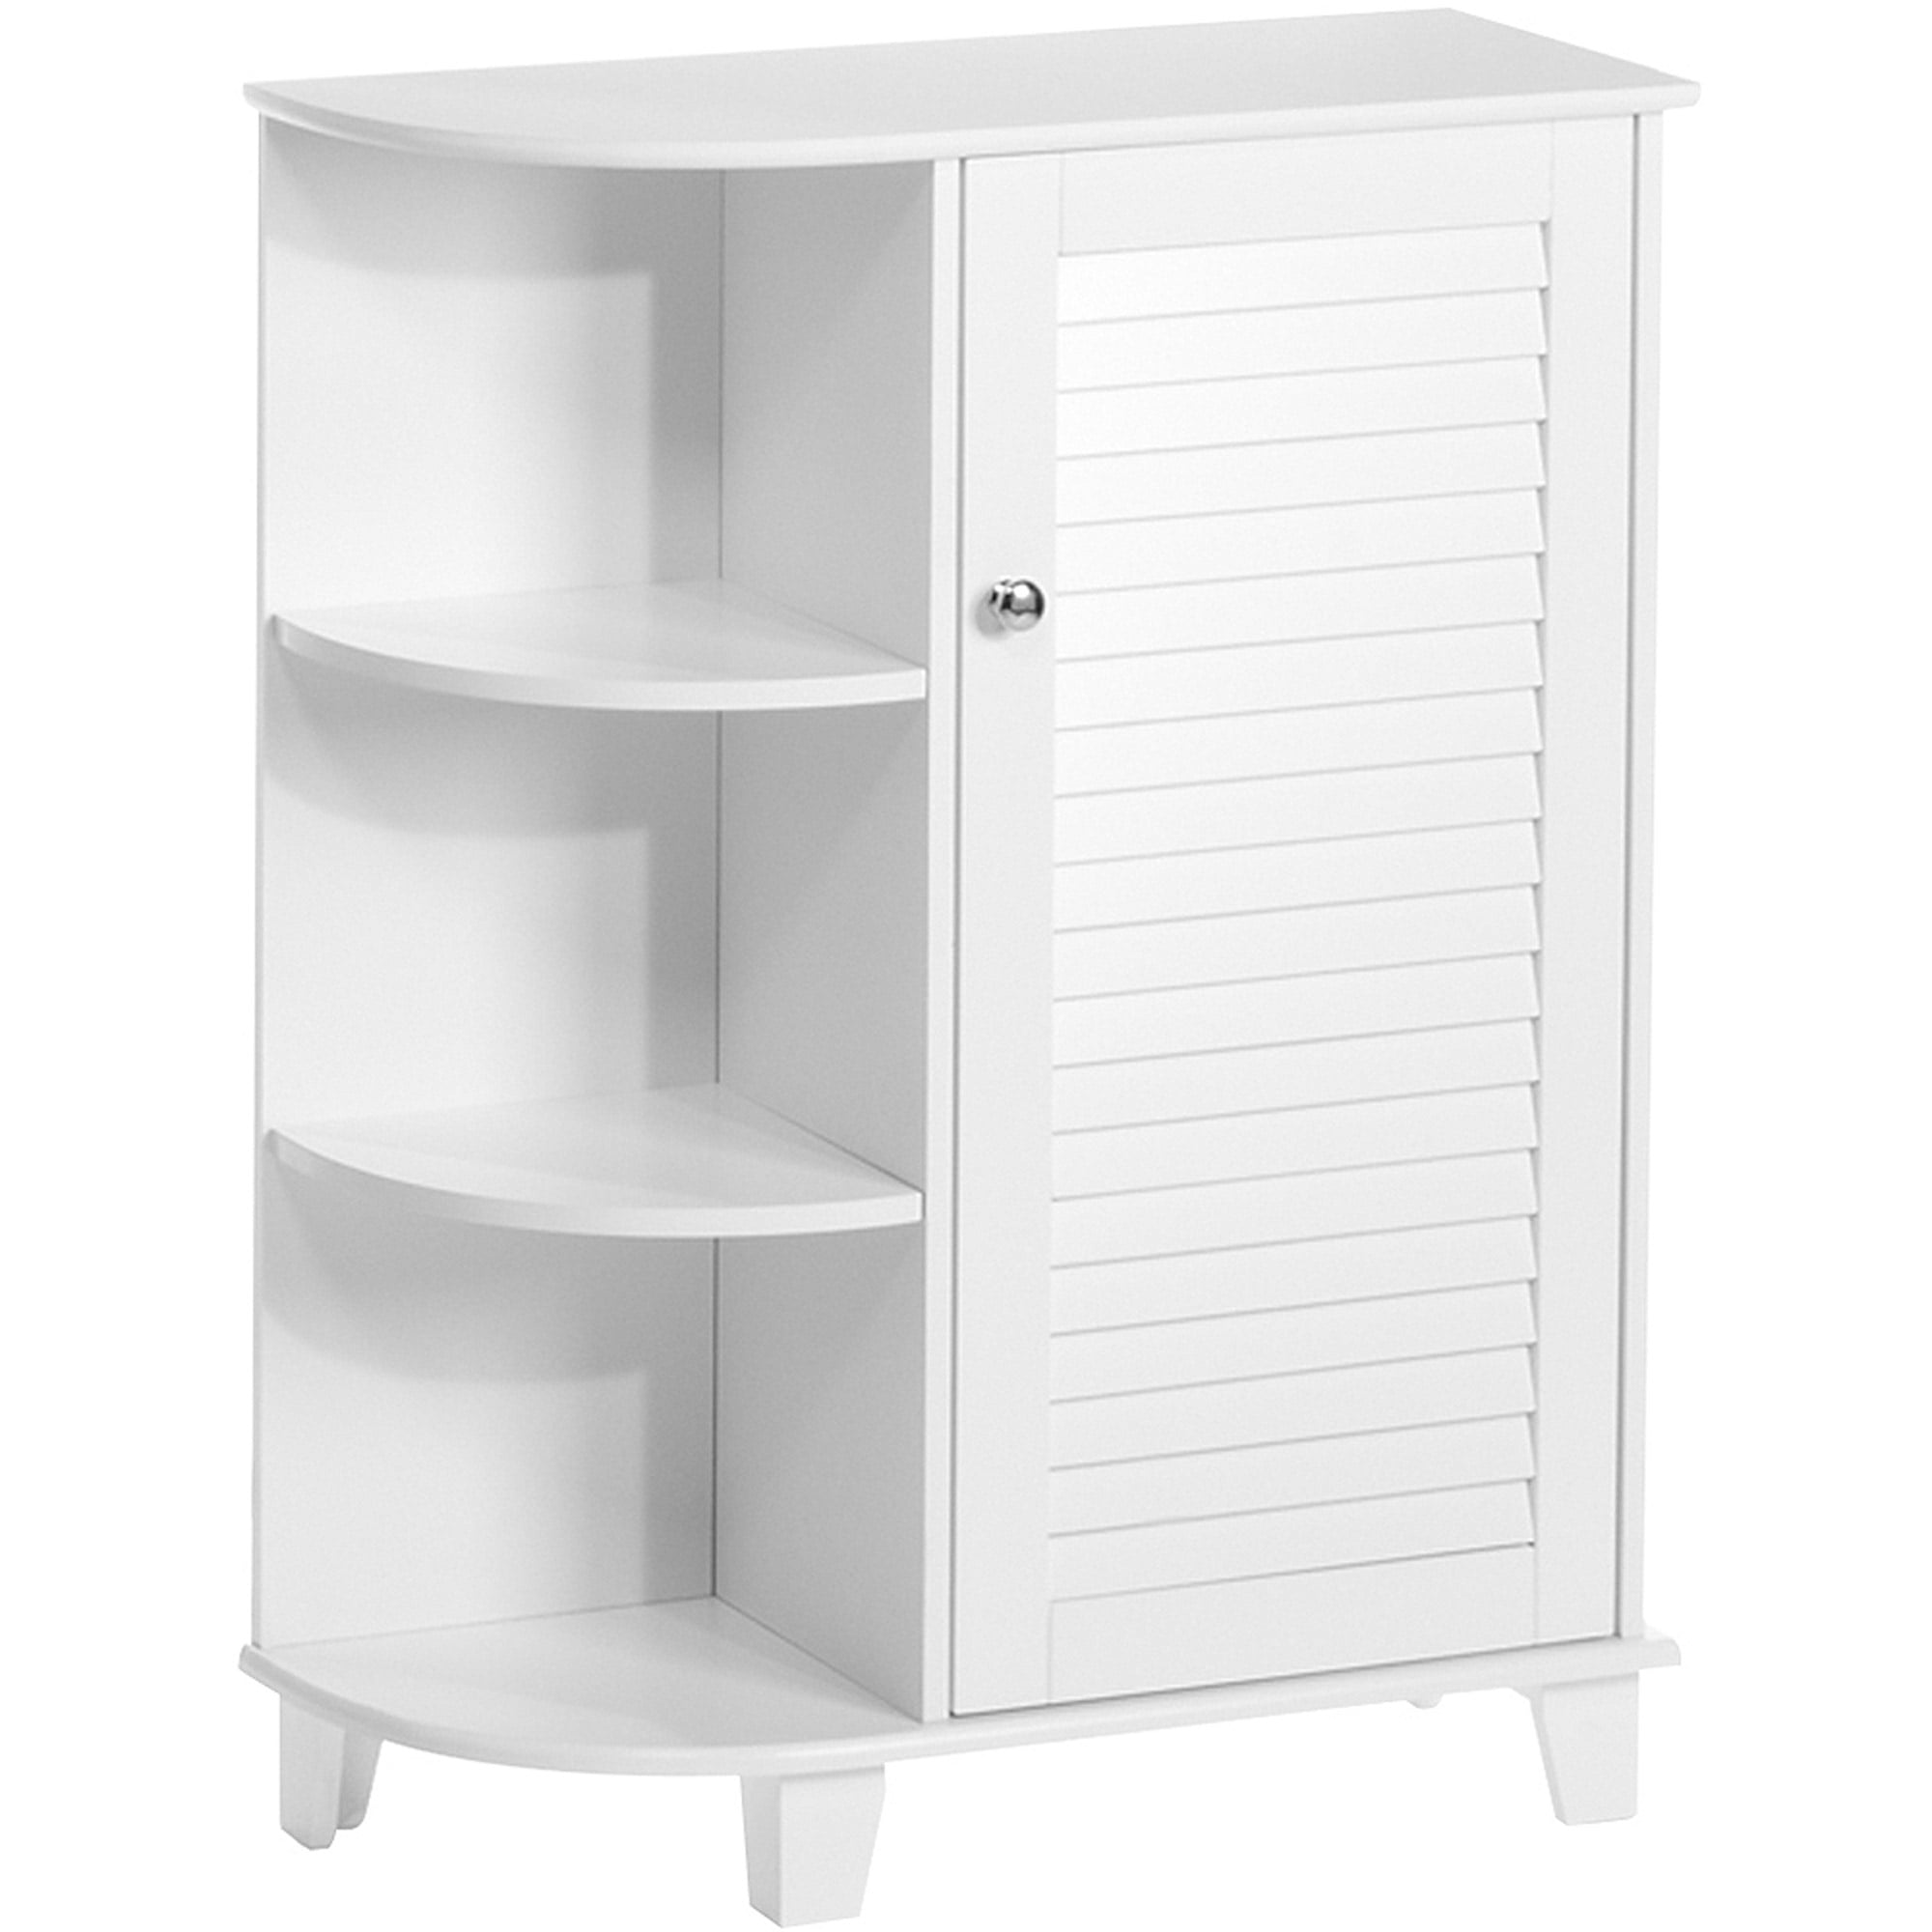 RiverRidge Home Ellsworth Floor Cabinet With Side Shelves, White    Walmart.com